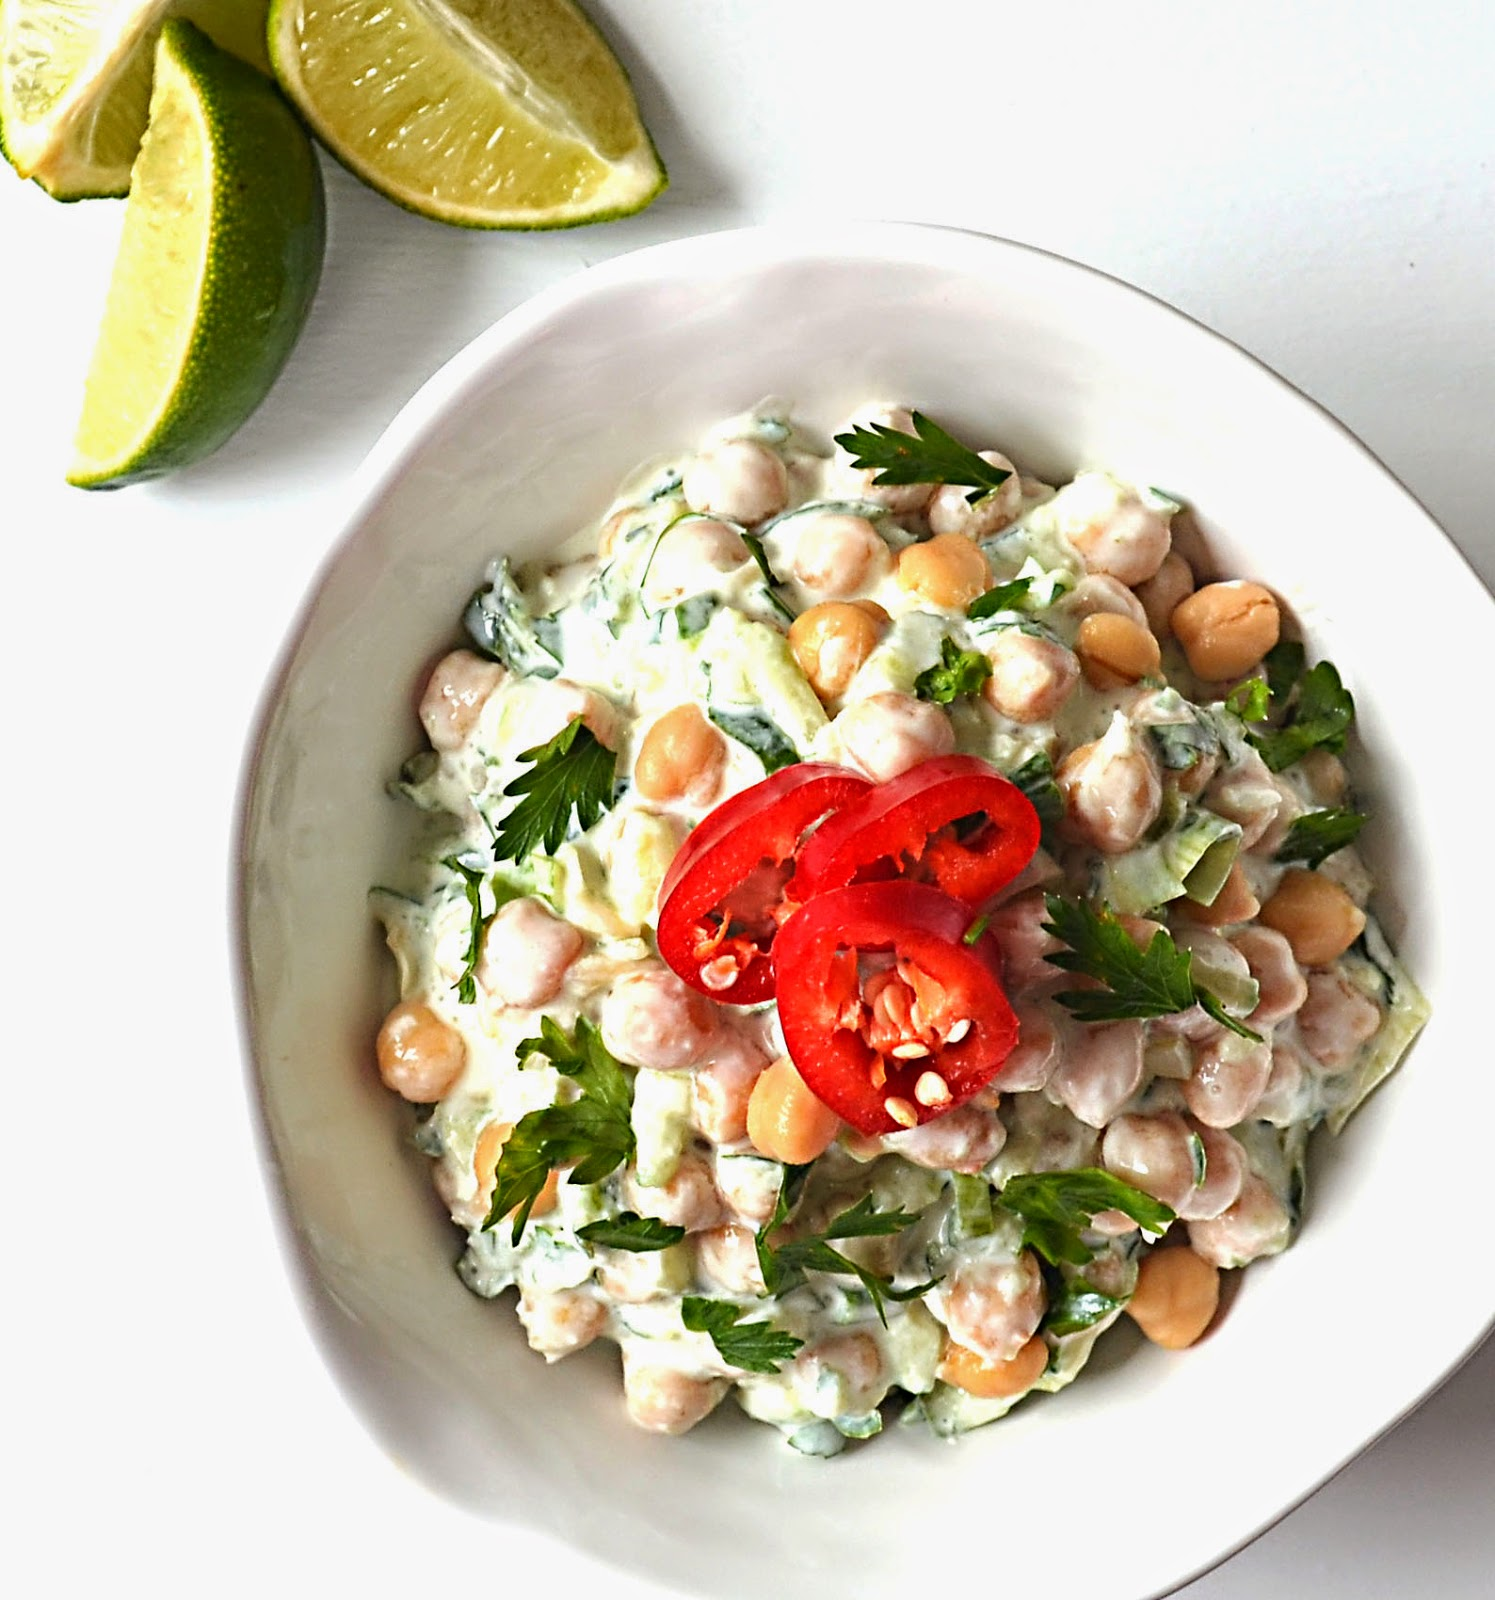 Sew French: Chili-Lime Tzatziki Chickpeas